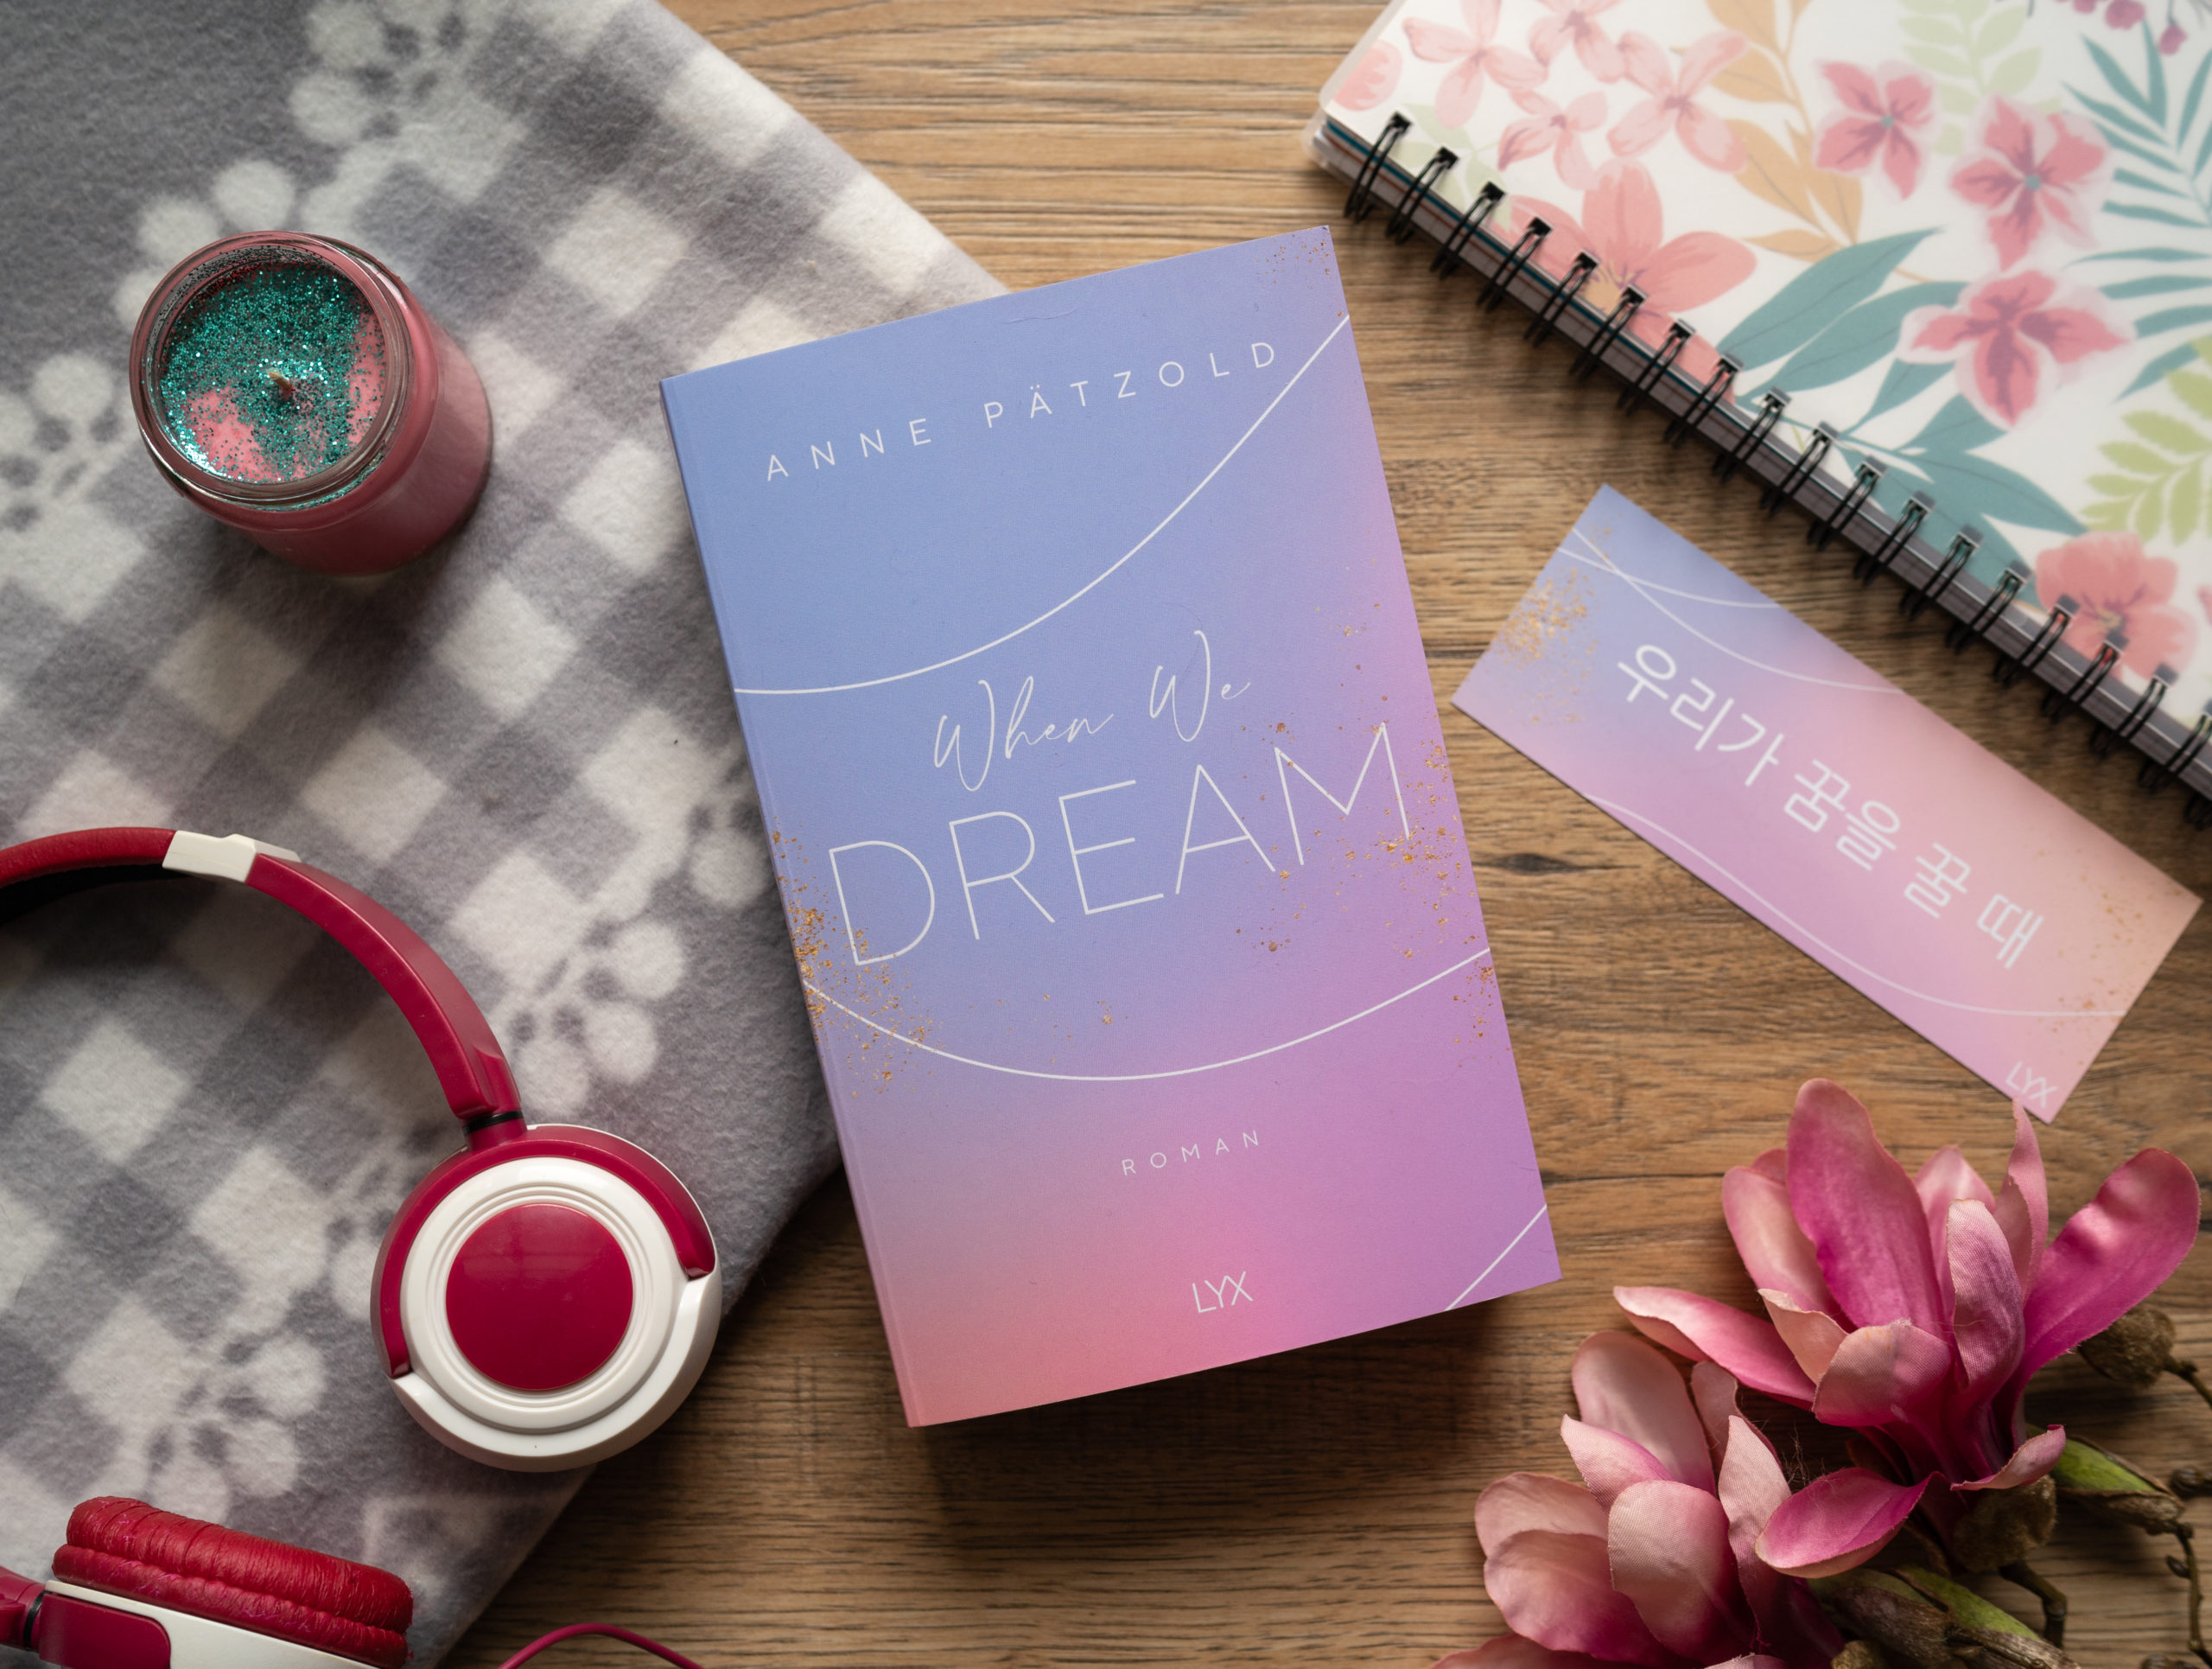 When We Dream – Anne Pätzold graphic